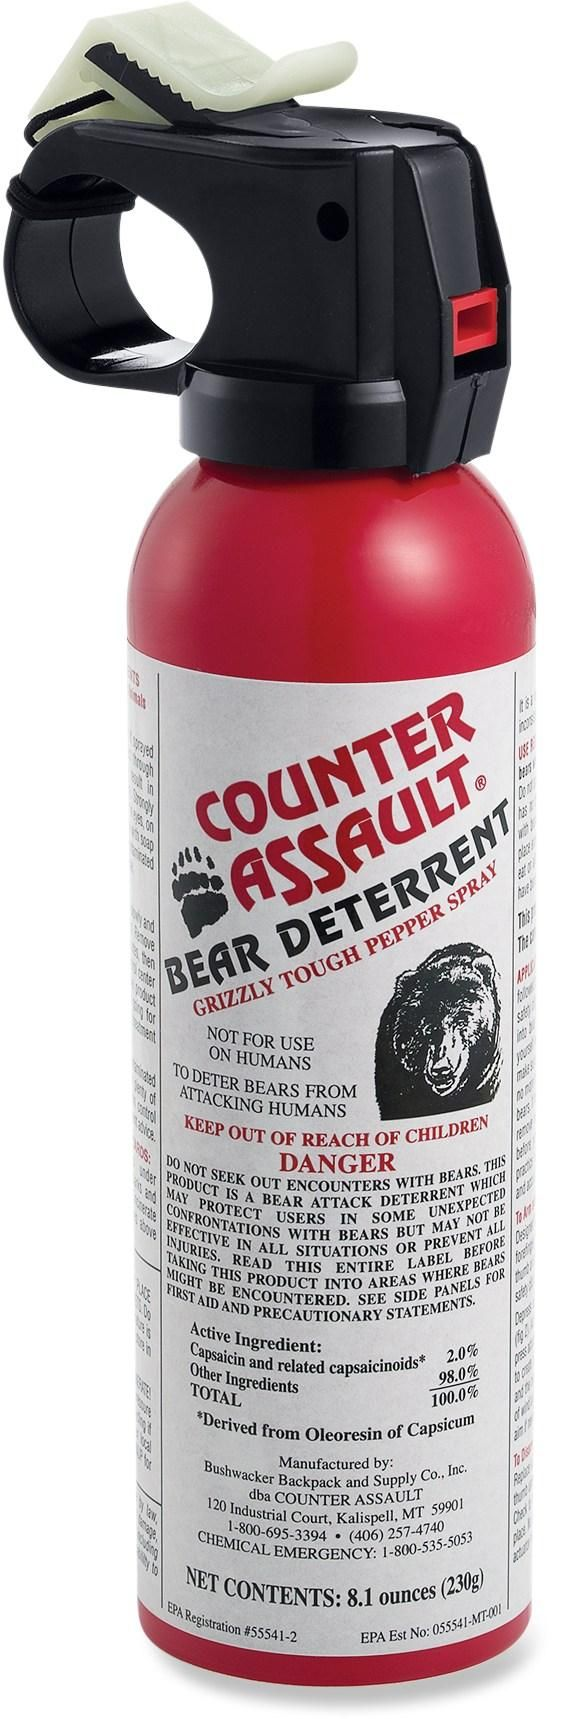 Even if you think your Dad can wrestle a bear, you may want to get him deterrent spray.